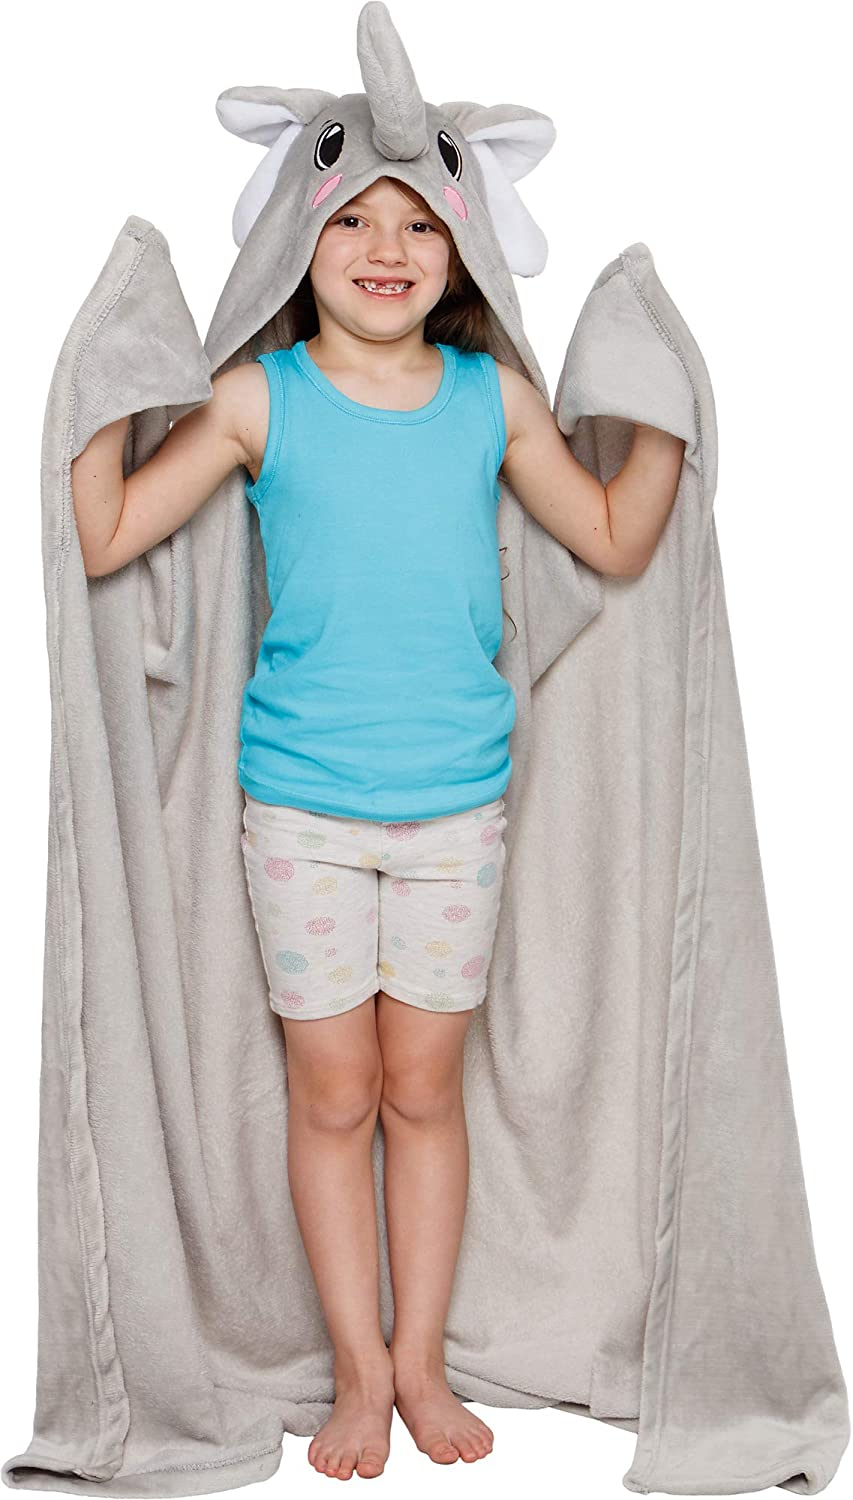 Silver Lilly Elephant Wearable Hooded Blanket - Soft Fleece Animal Wrap Around Dress-Up Costume Throw Blanket Cloak for Kids